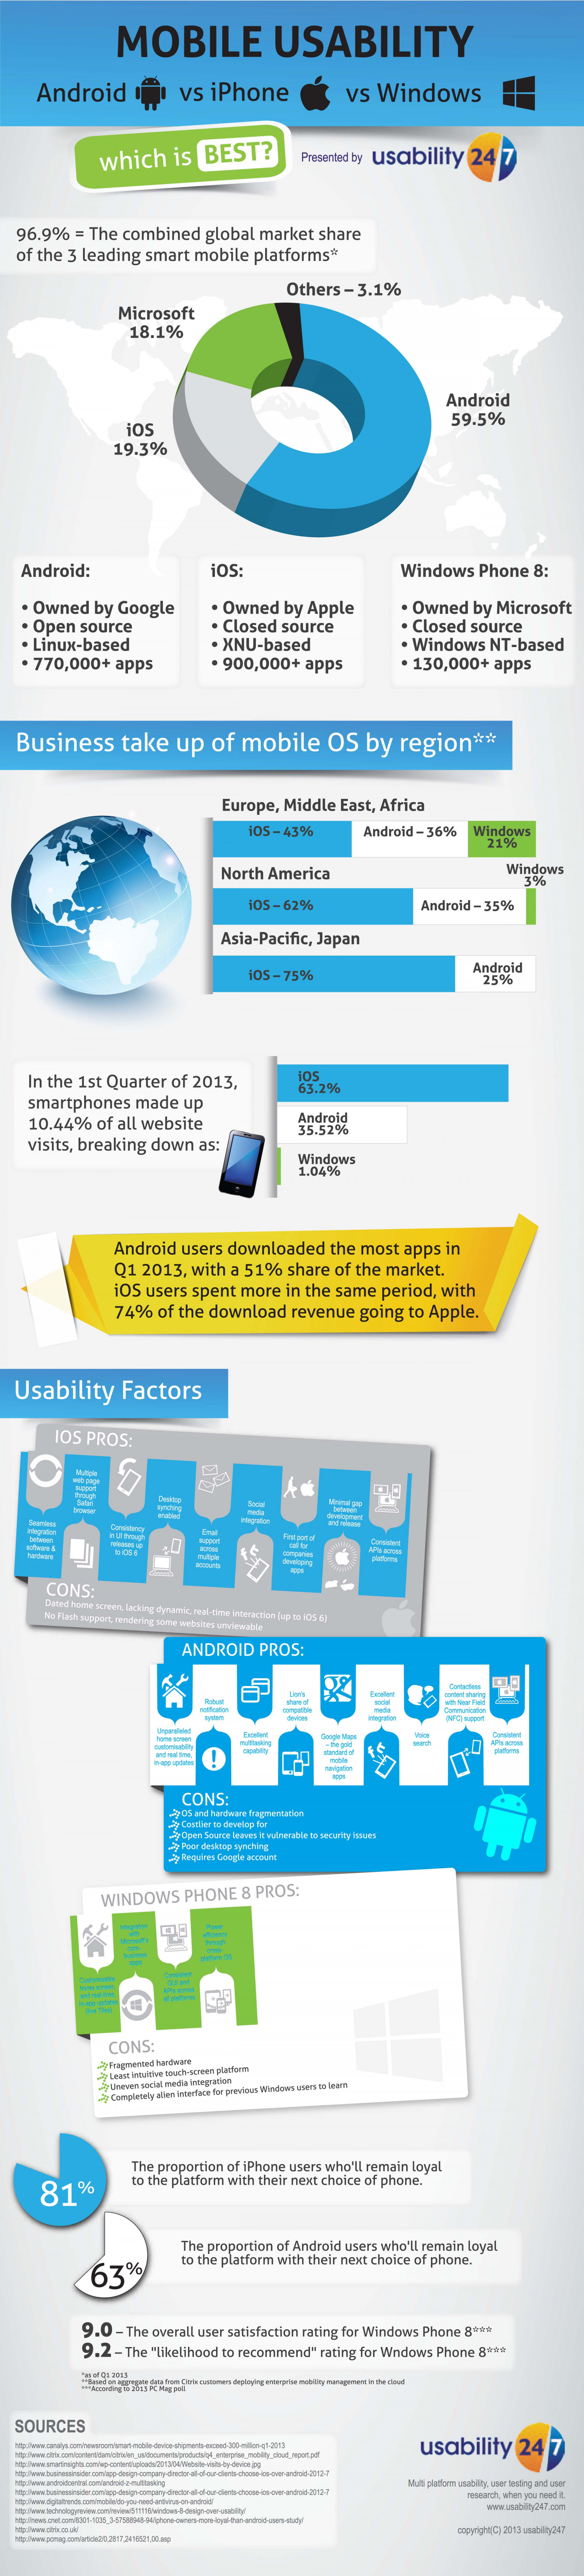 Mobile usability: which is best? Android vs. iOS vs. Windows mobile Infographic